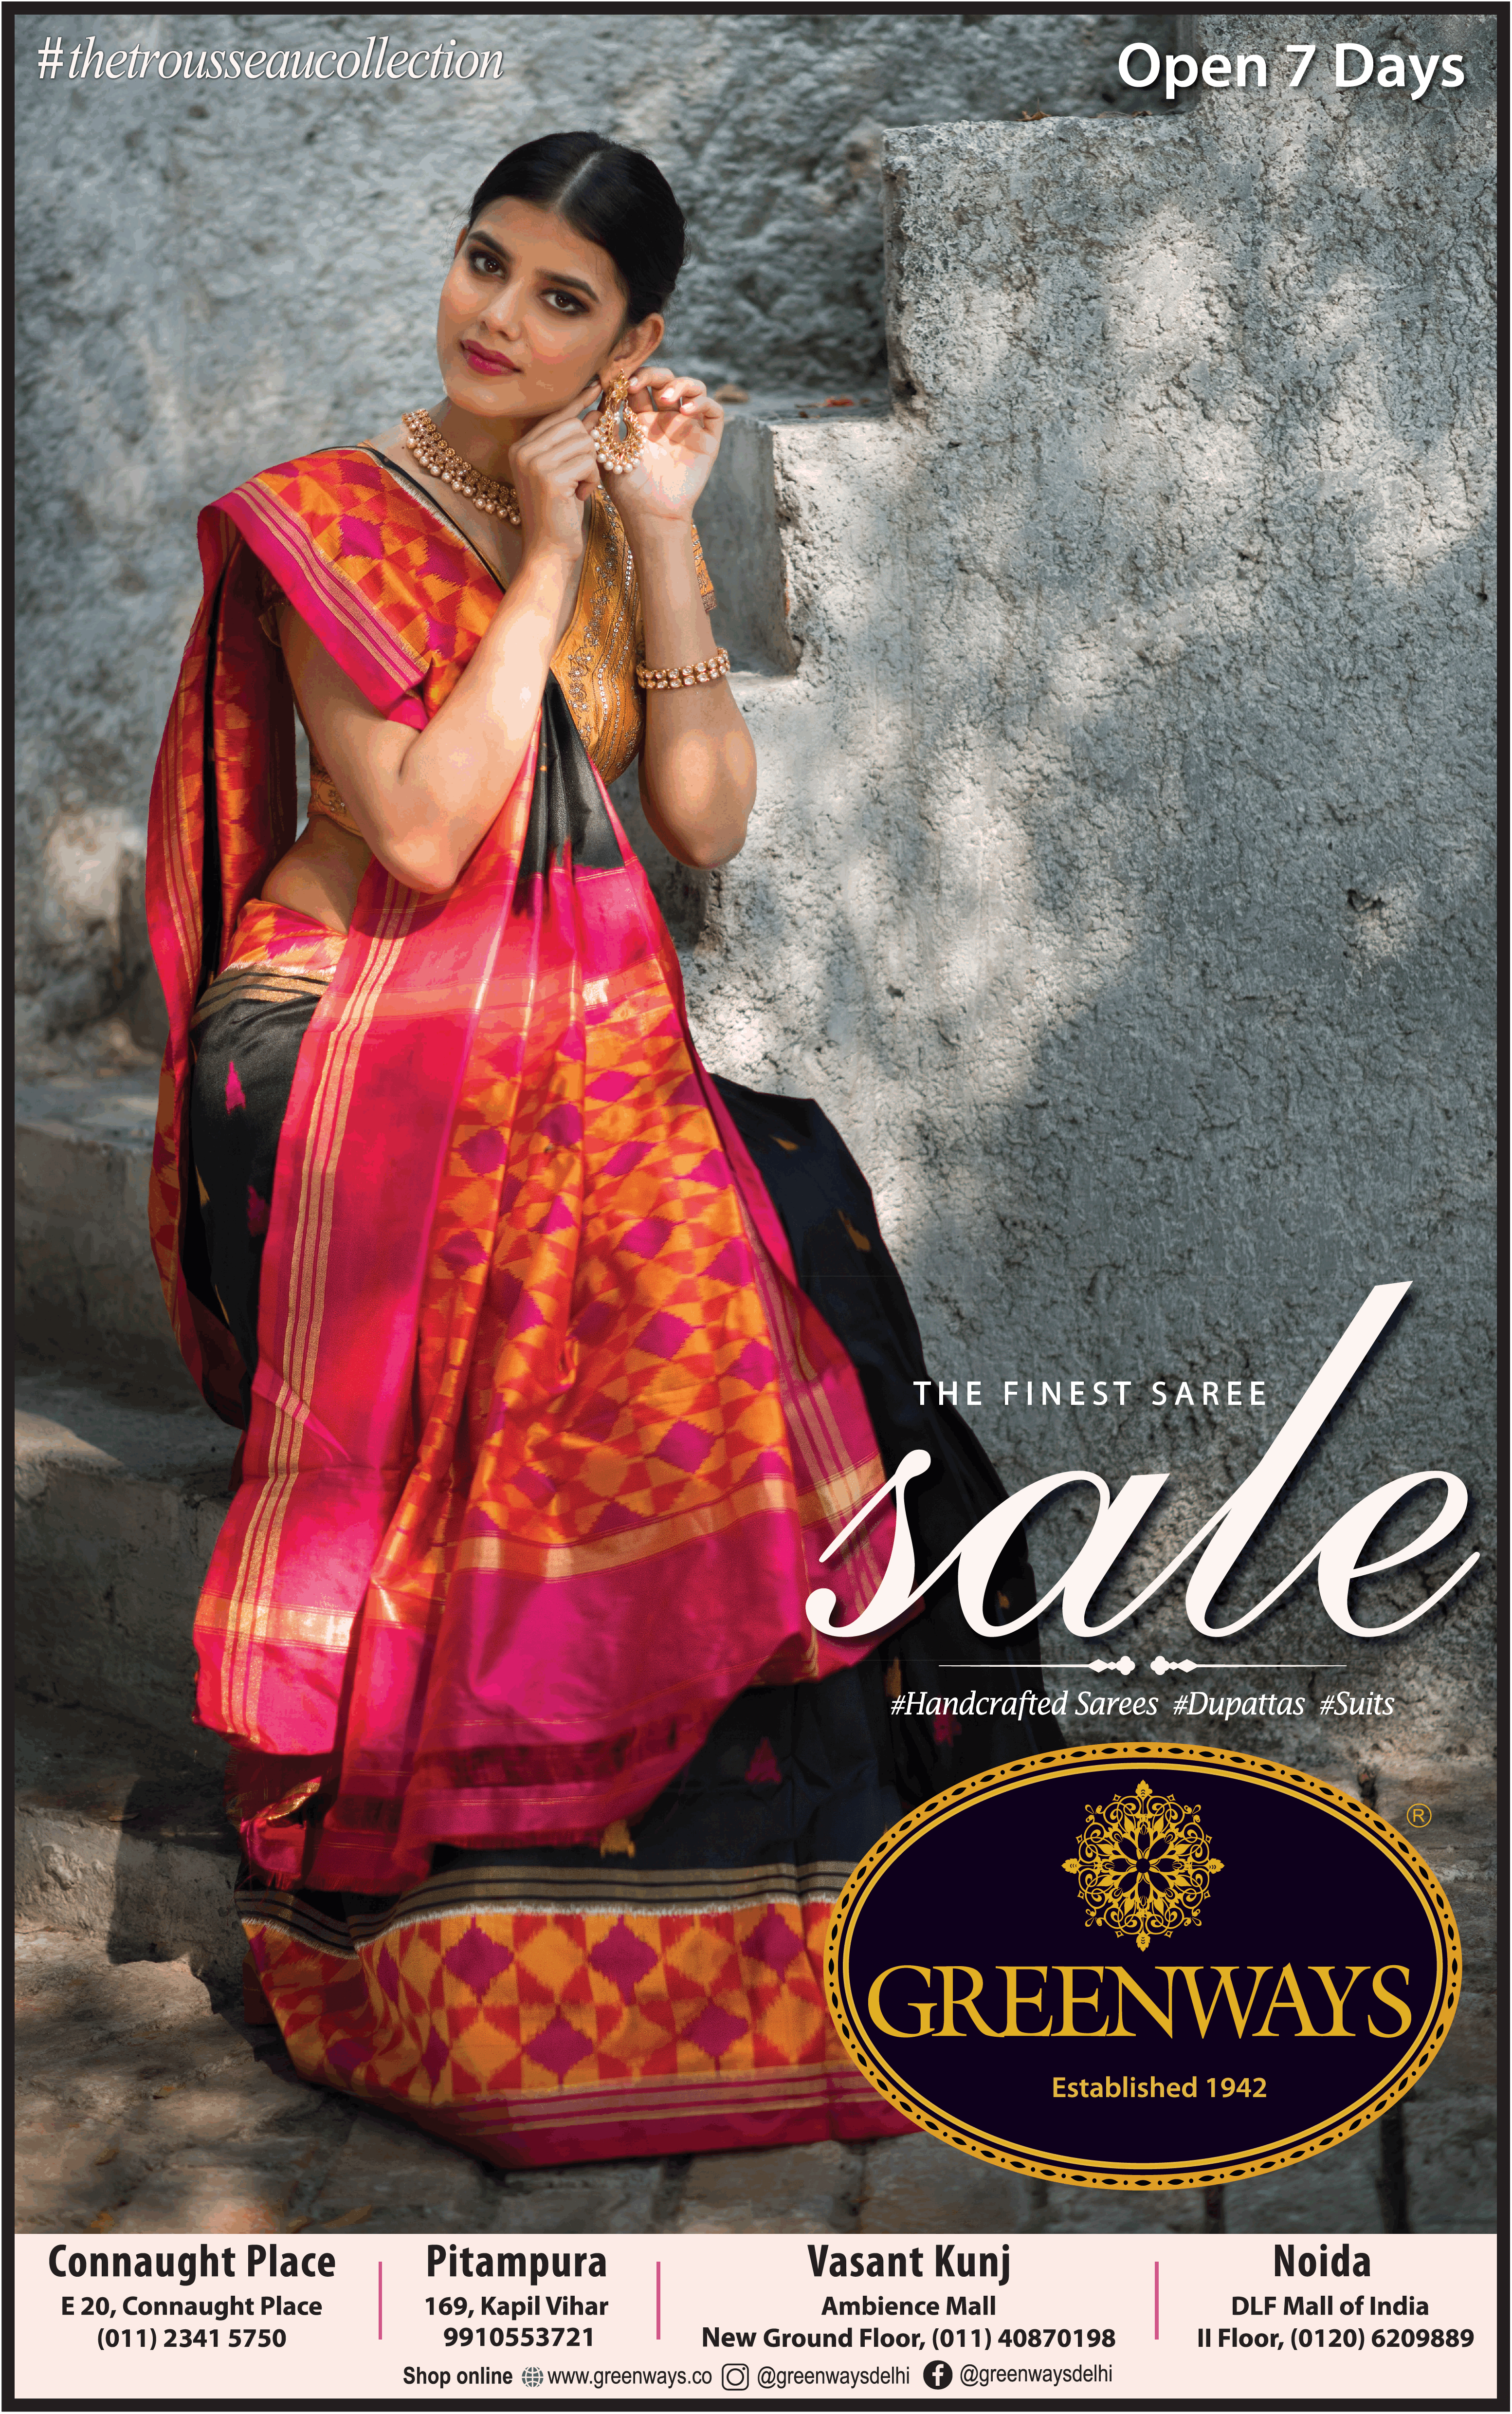 greenways-handcrafted-sarees-dupattas-suits-the-finest-saree-sale-thetrousseaucollection-ad-times-of-india-delhi-10-7-2021